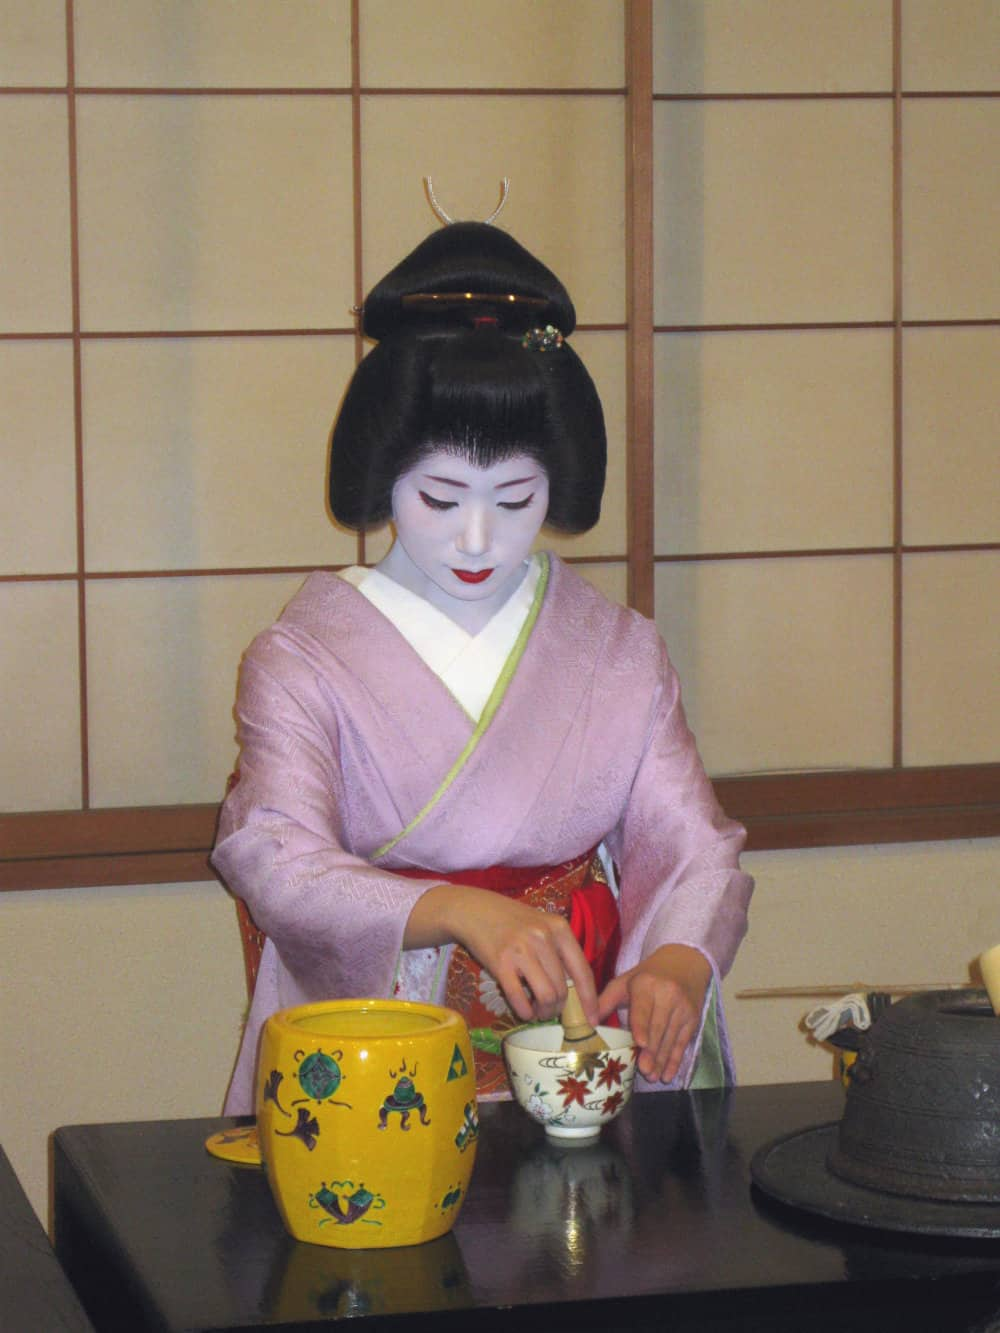 A geisha in Kyoto whisking up a bowl of green tea